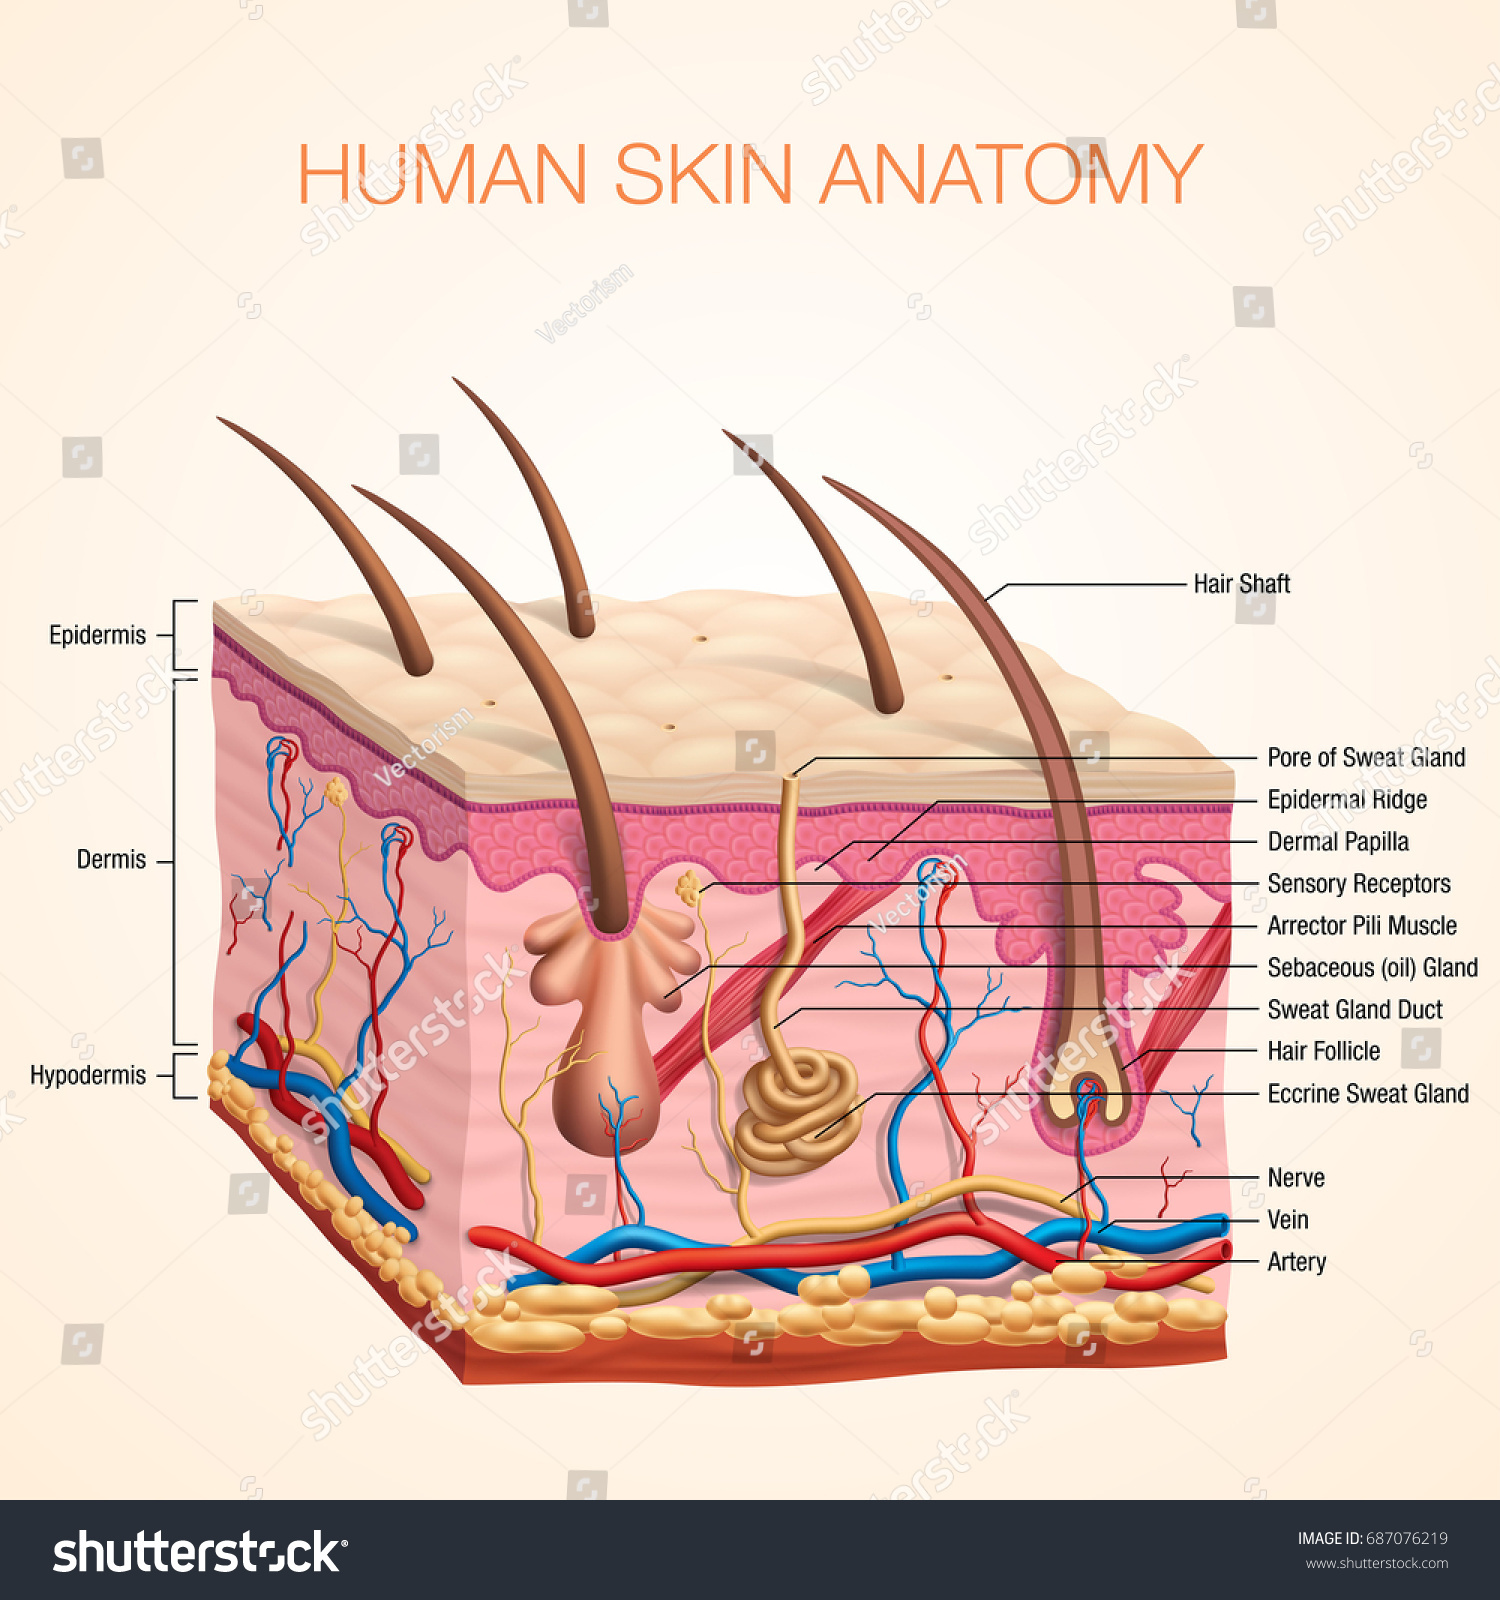 Human Body Skin Anatomy Vector Illustration Stock Vector Royalty